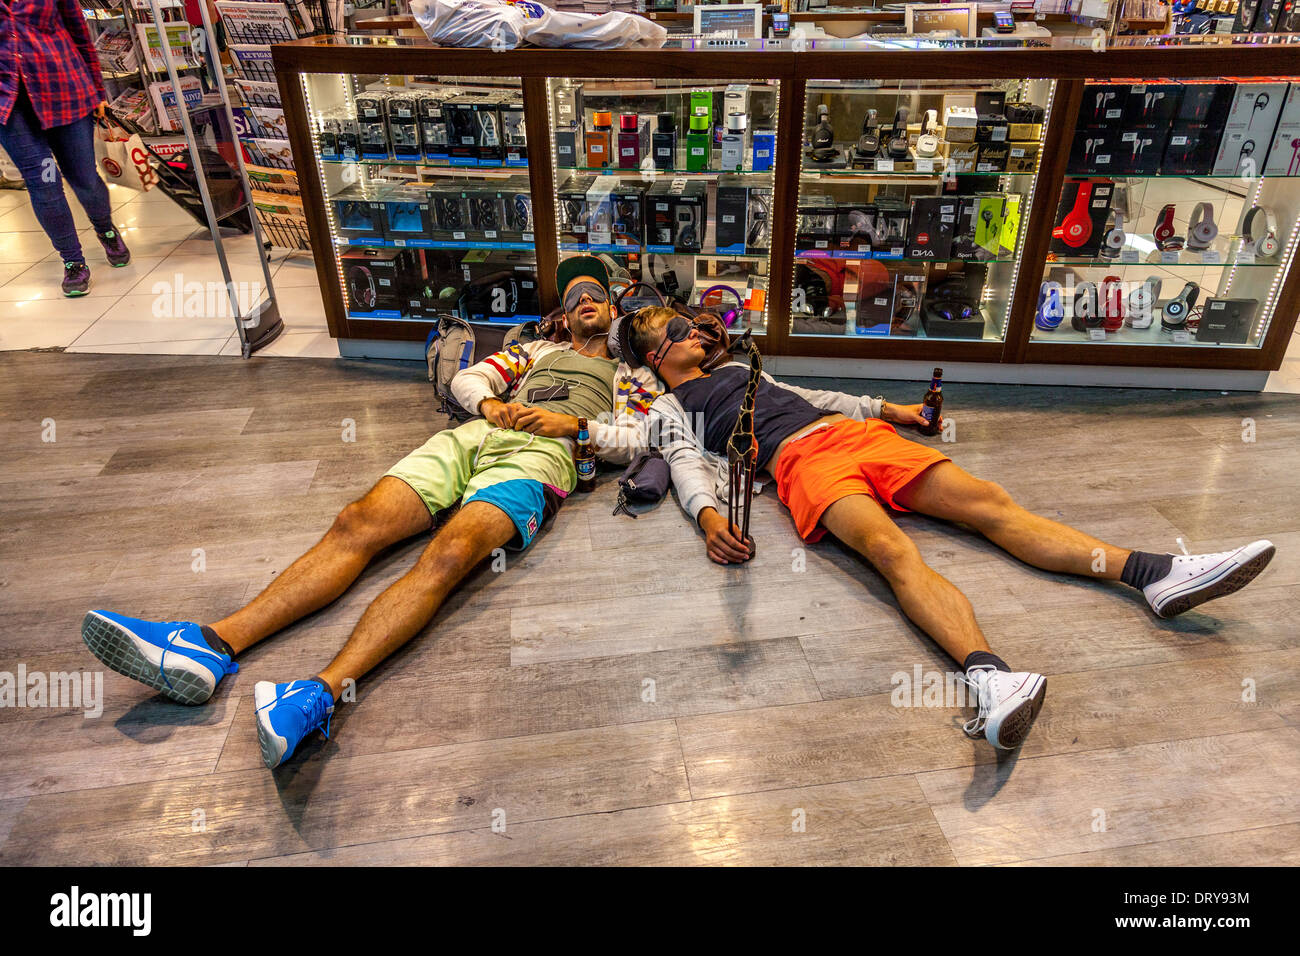 Two Sleeping Travellers Outside The Duty Free Shop, Ataturk Airport, Istanbul, Turkey - Stock Image